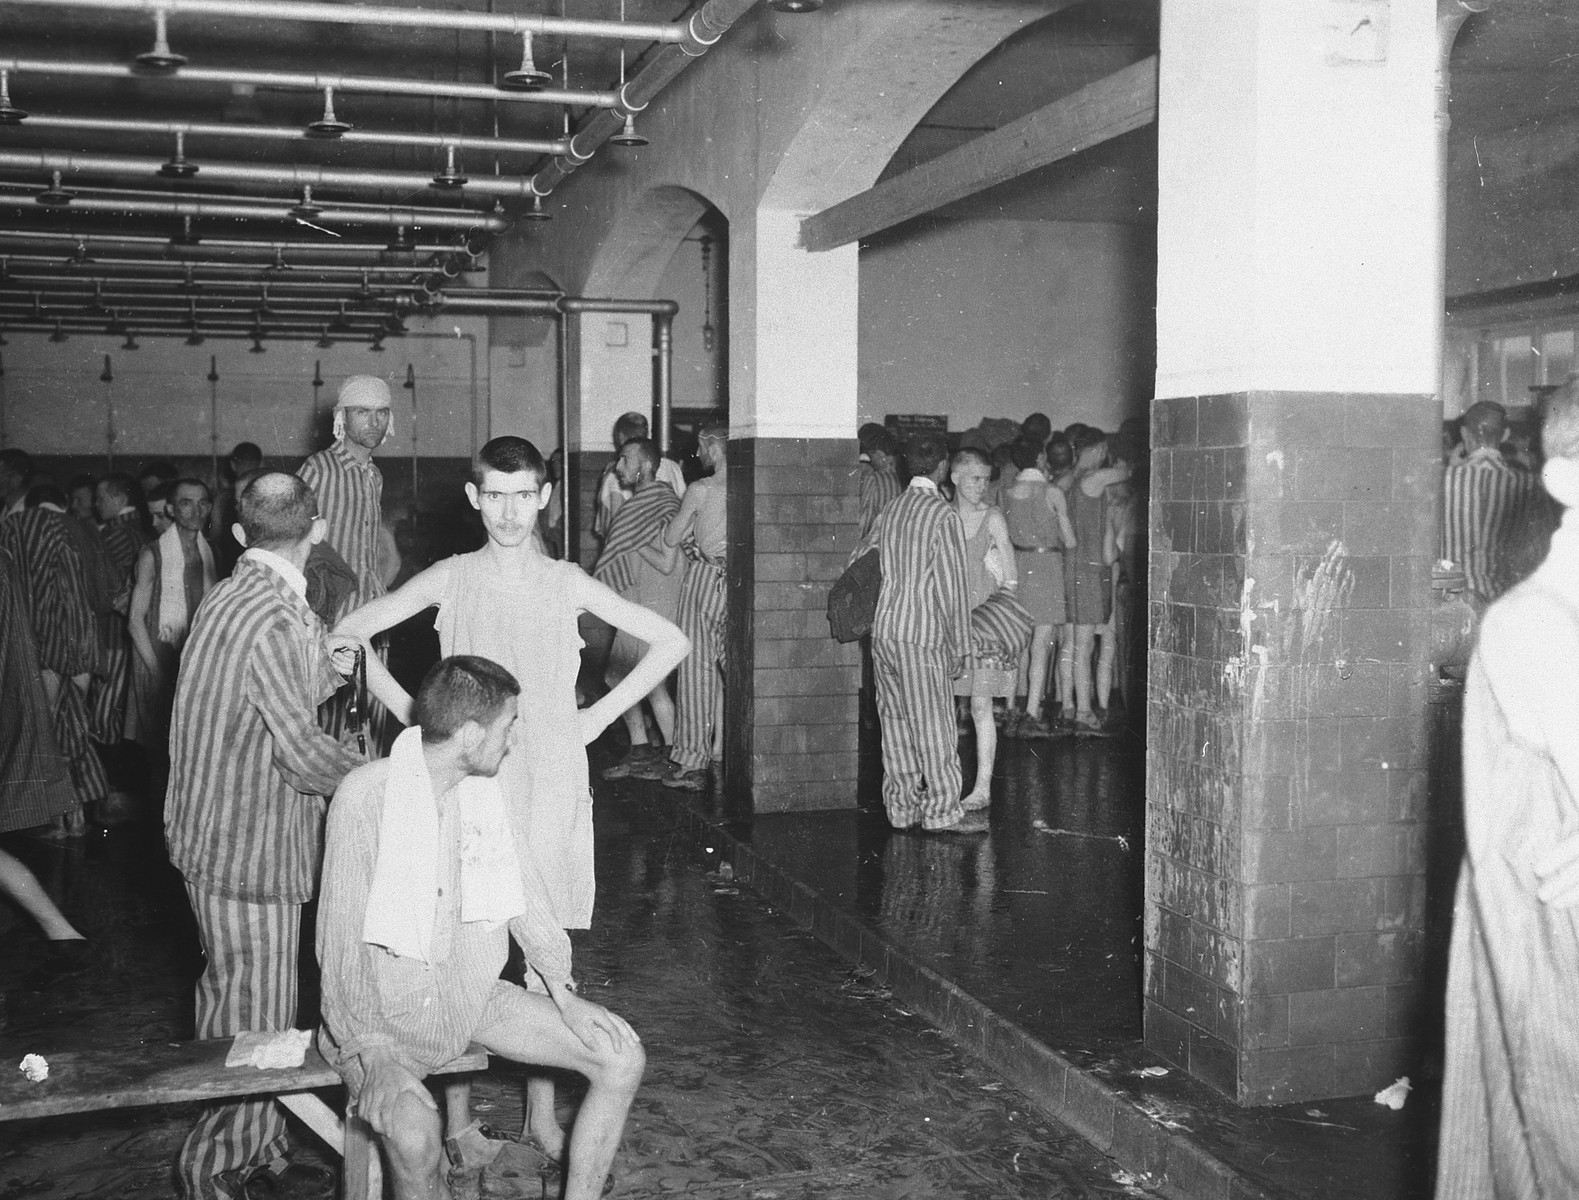 Survivors in the shower barracks after liberation.